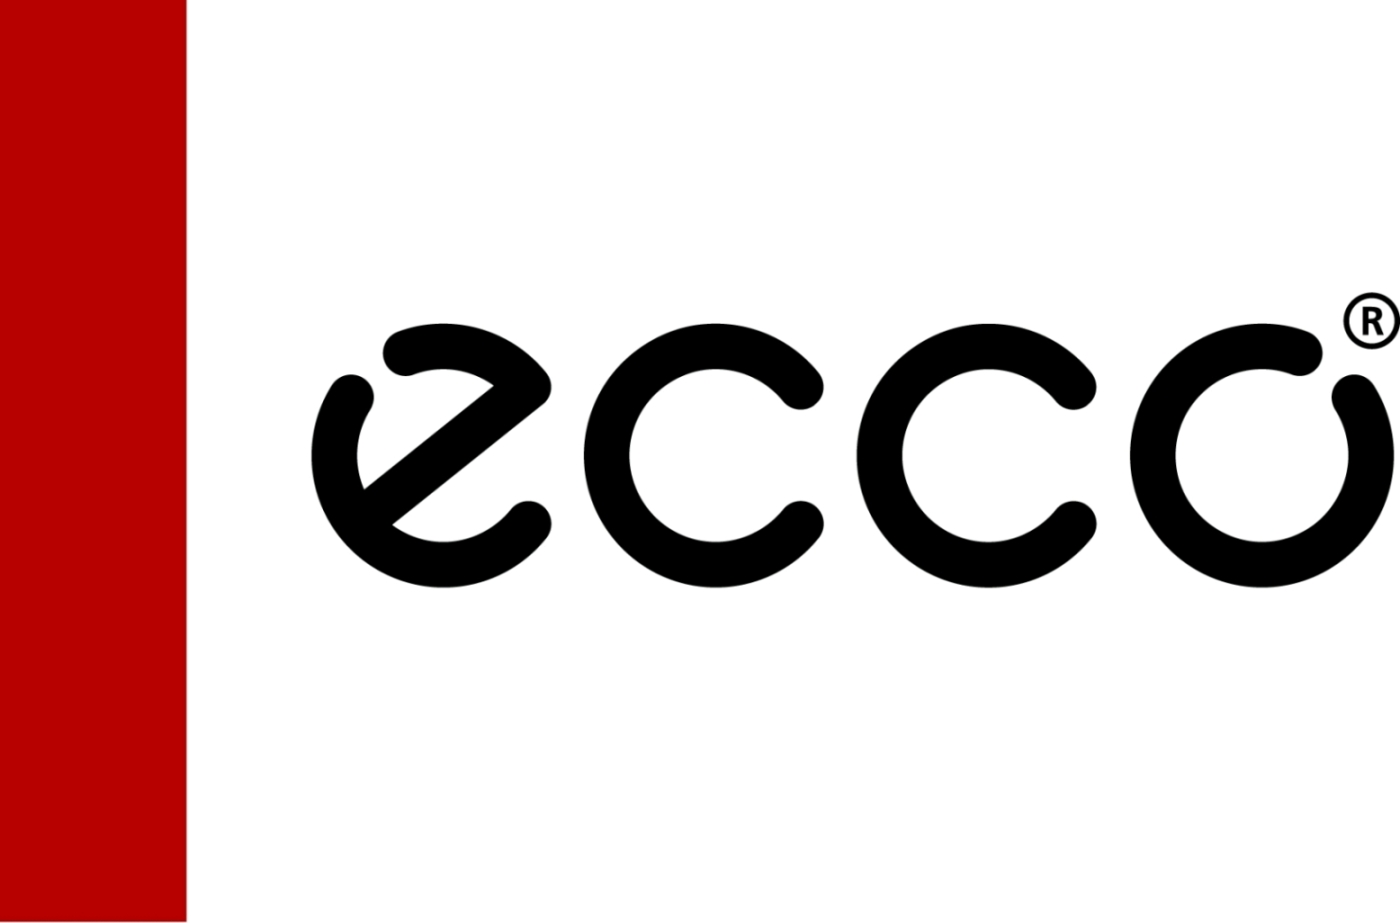 2002-ecco-international